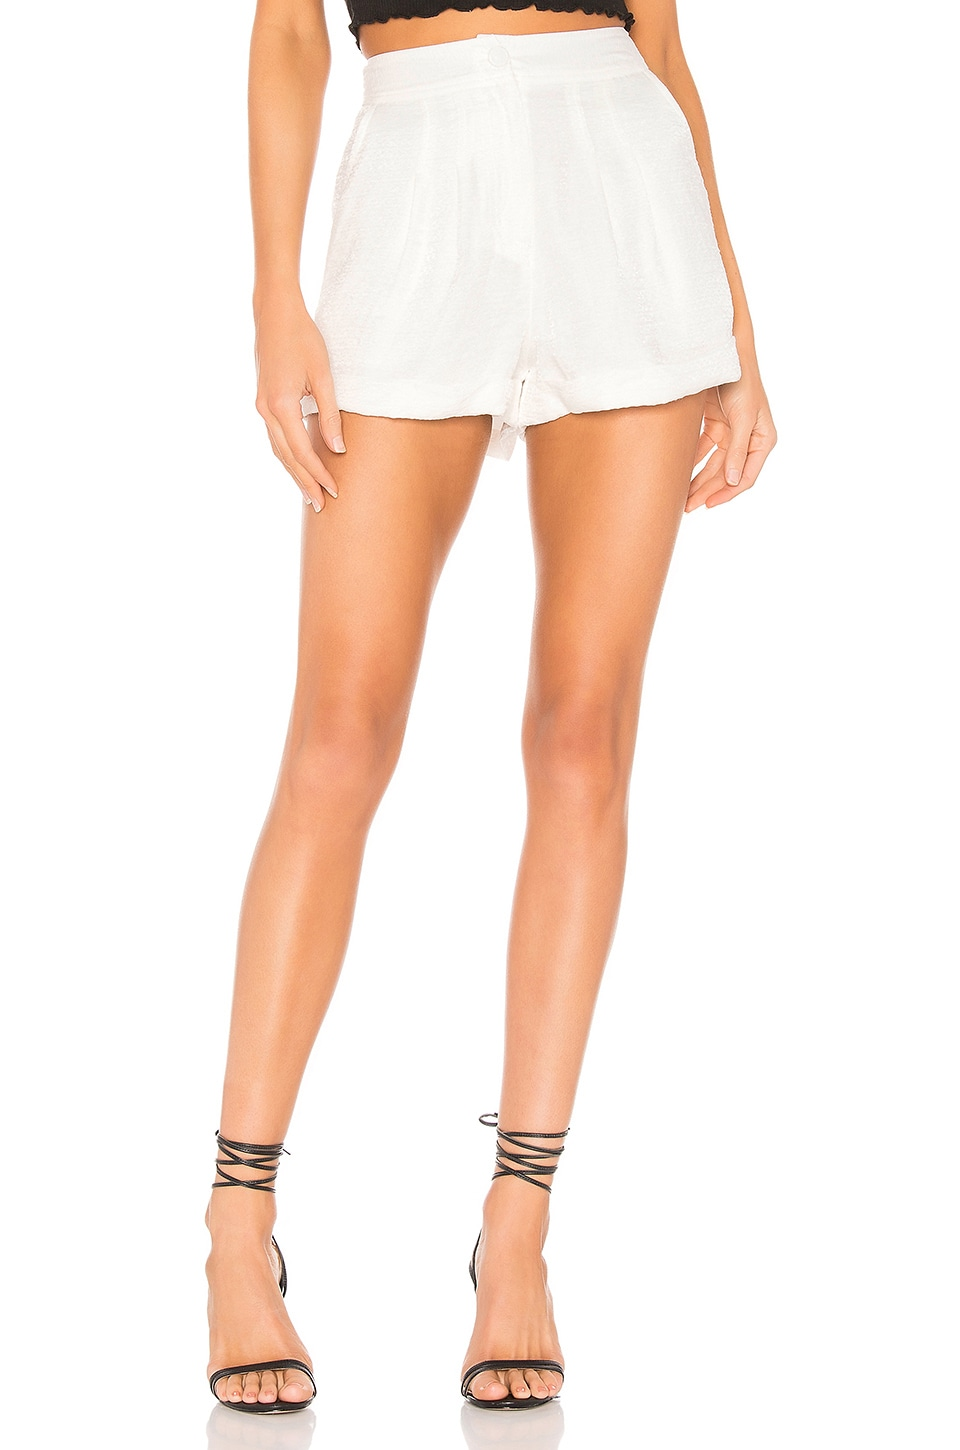 House of Harlow 1960 x REVOLVE Charlie Short in White